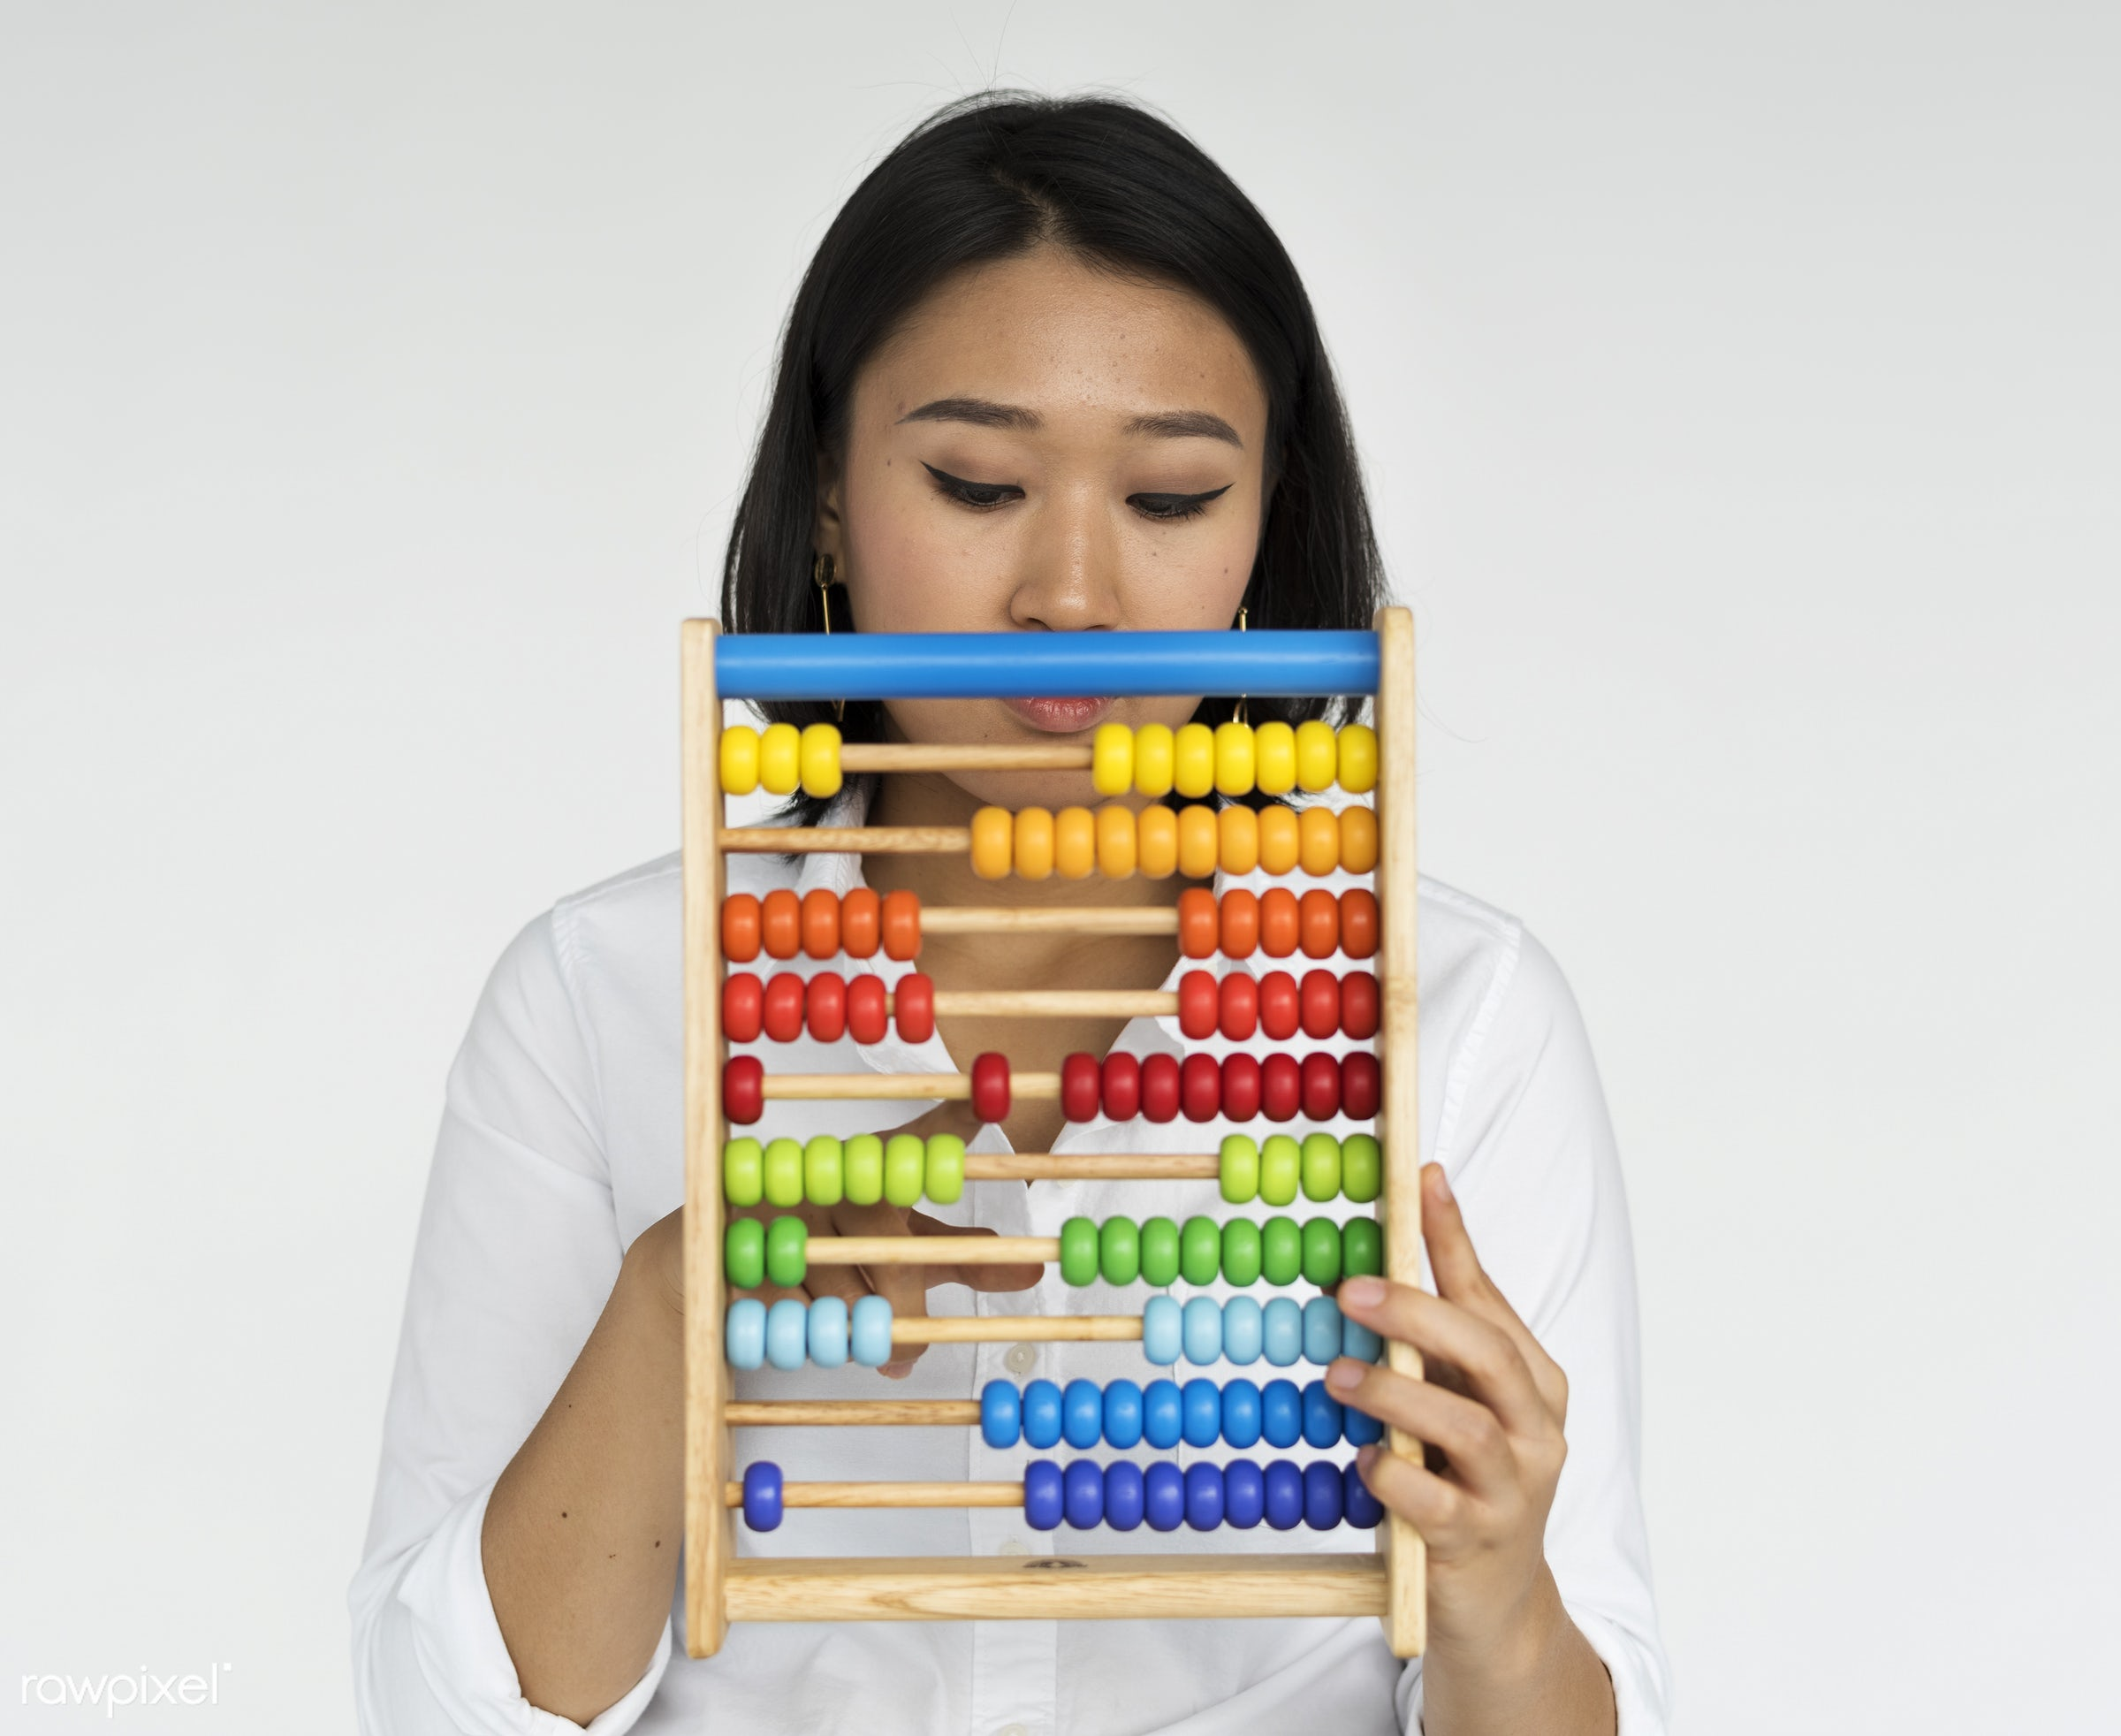 studio, expression, person, count, tool, accounting, people, asian, woman, abacus, positive, smile, cheerful, isolated,...